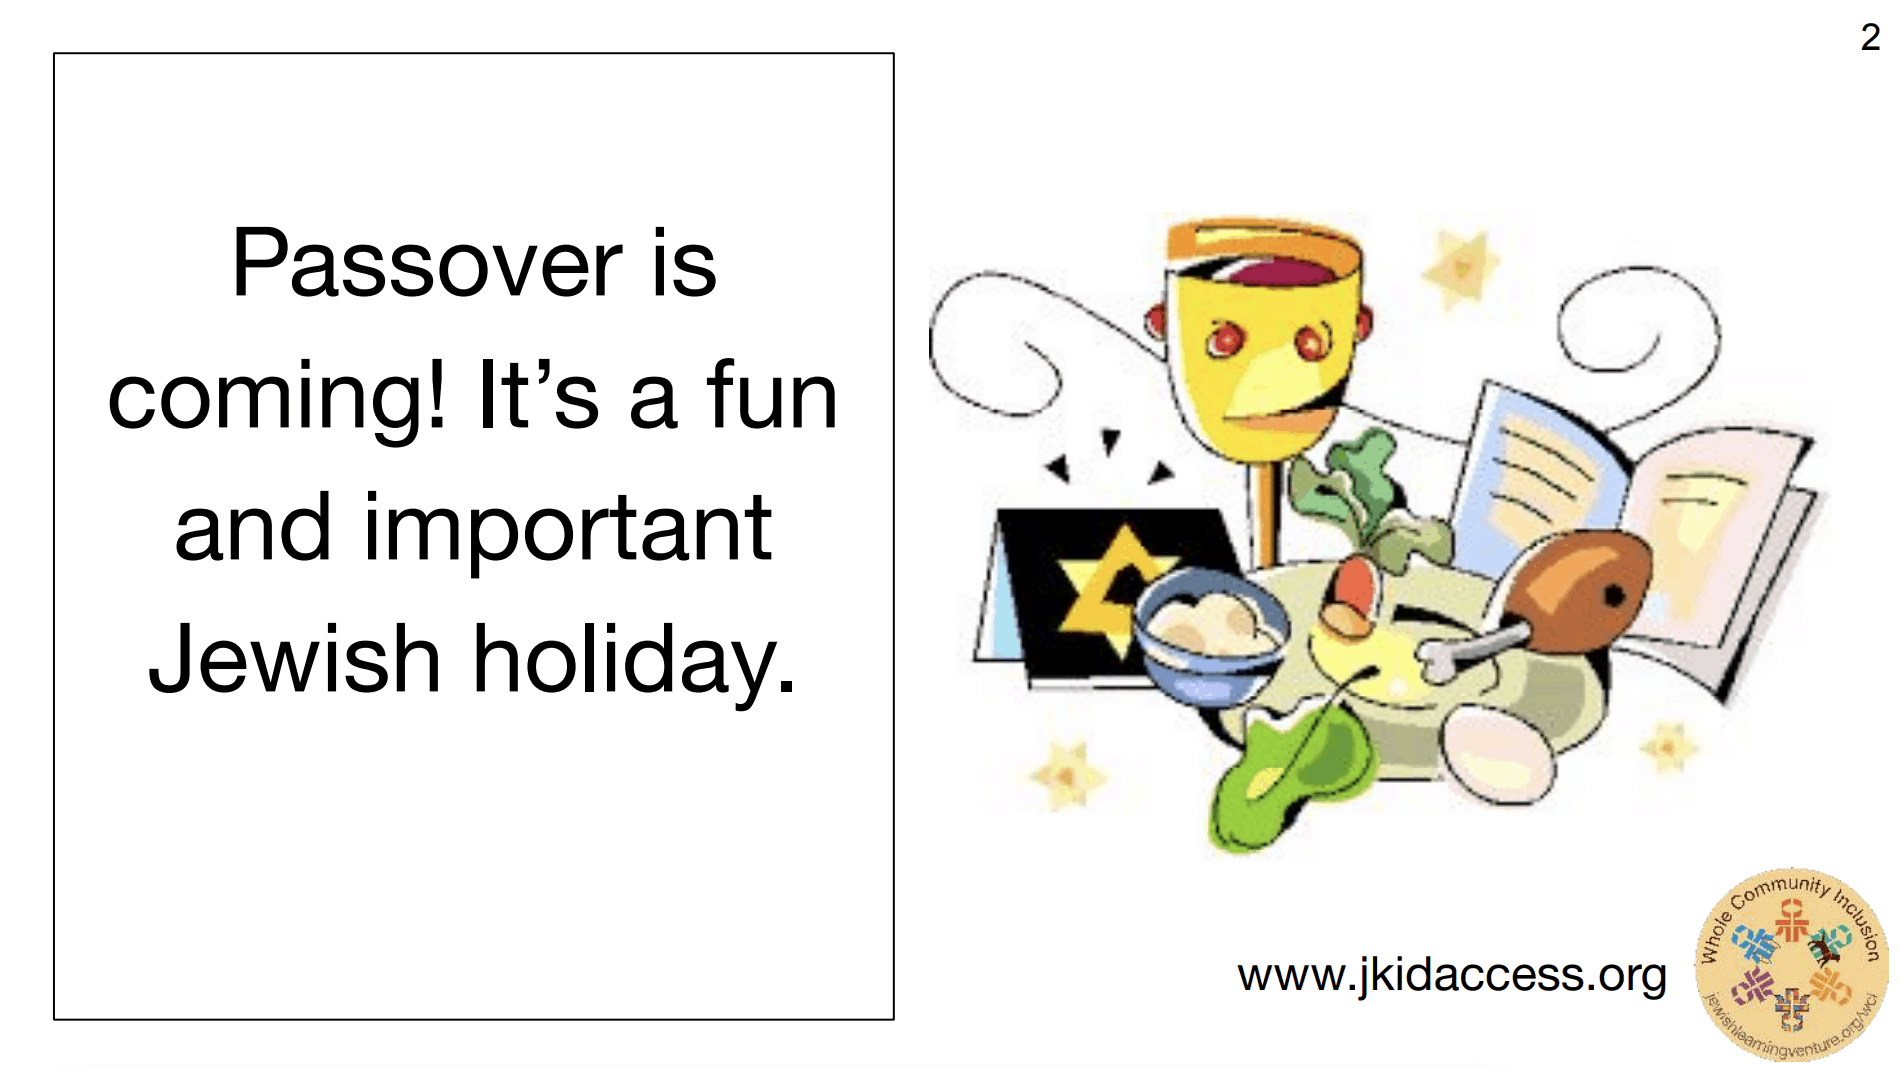 """A screenshot of a PDF that says """"Passover is coming! It's a fun and important Jewish holiday."""" On the right, there's an illustration of a kiddush cup, a booklet, and a seder plate."""